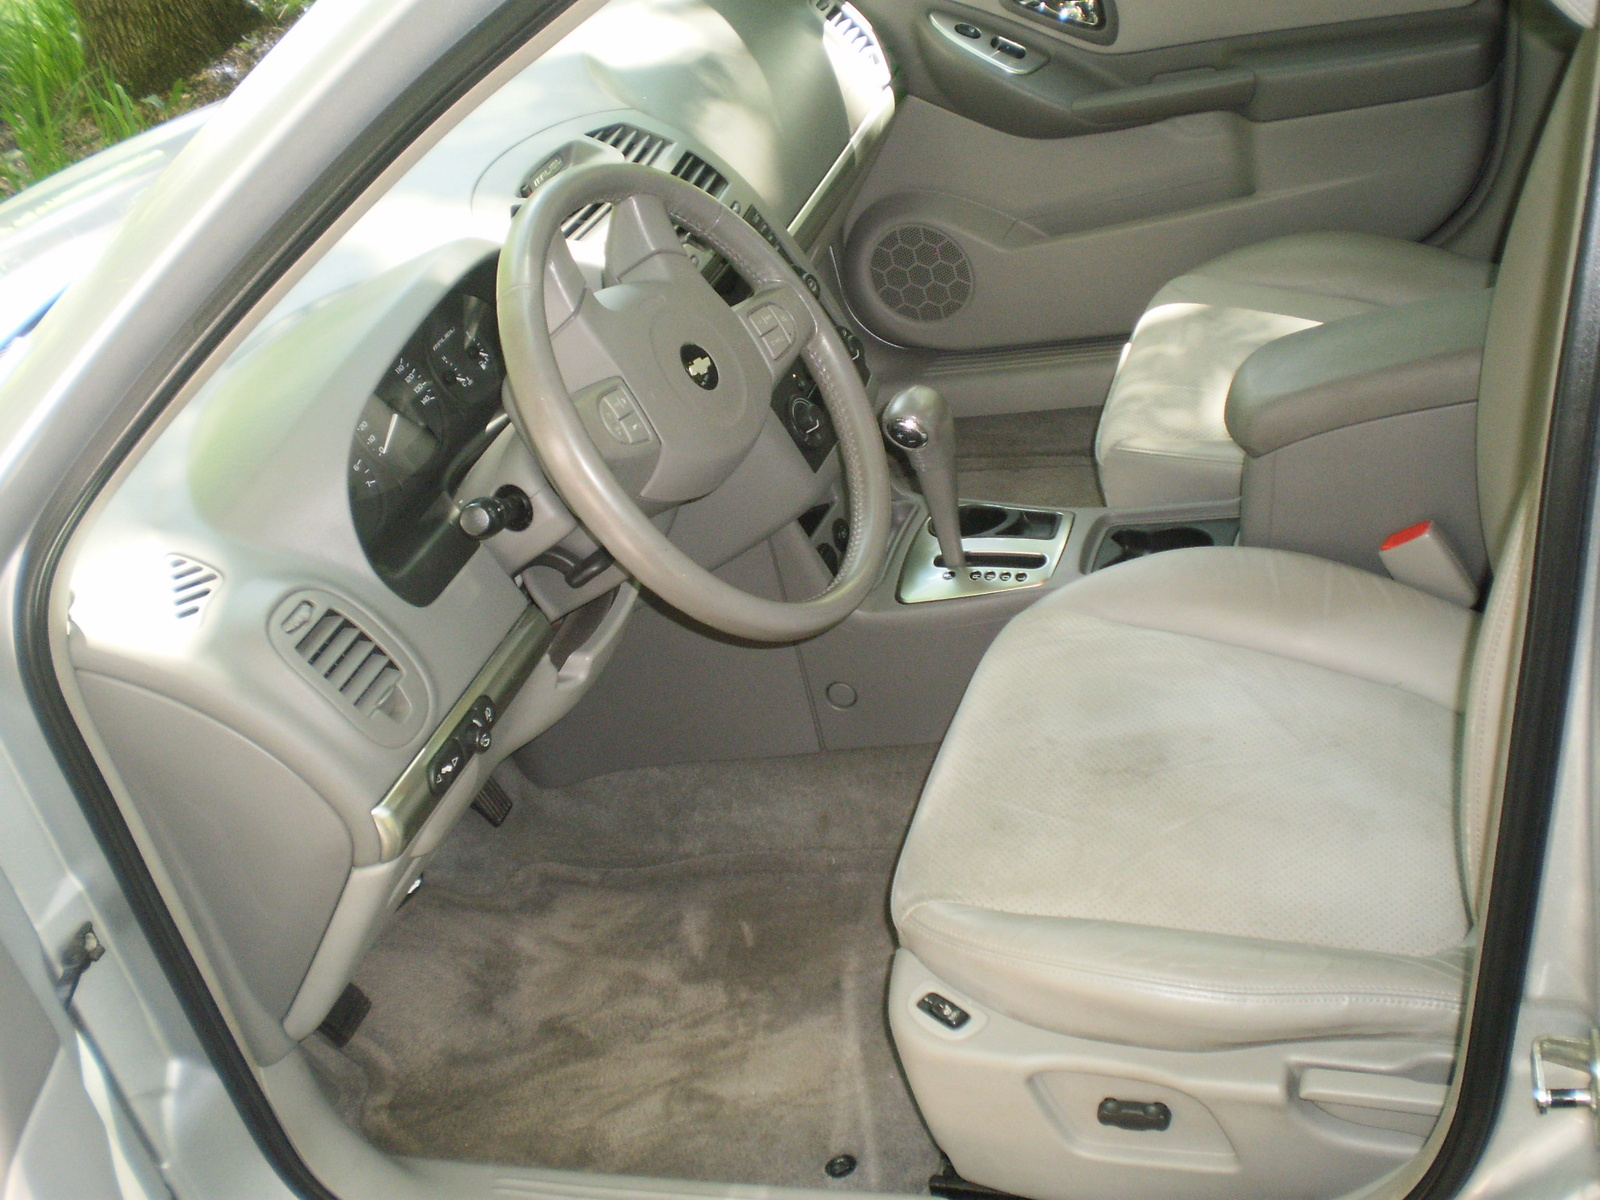 2004 chevrolet malibu interior pictures cargurus. Black Bedroom Furniture Sets. Home Design Ideas